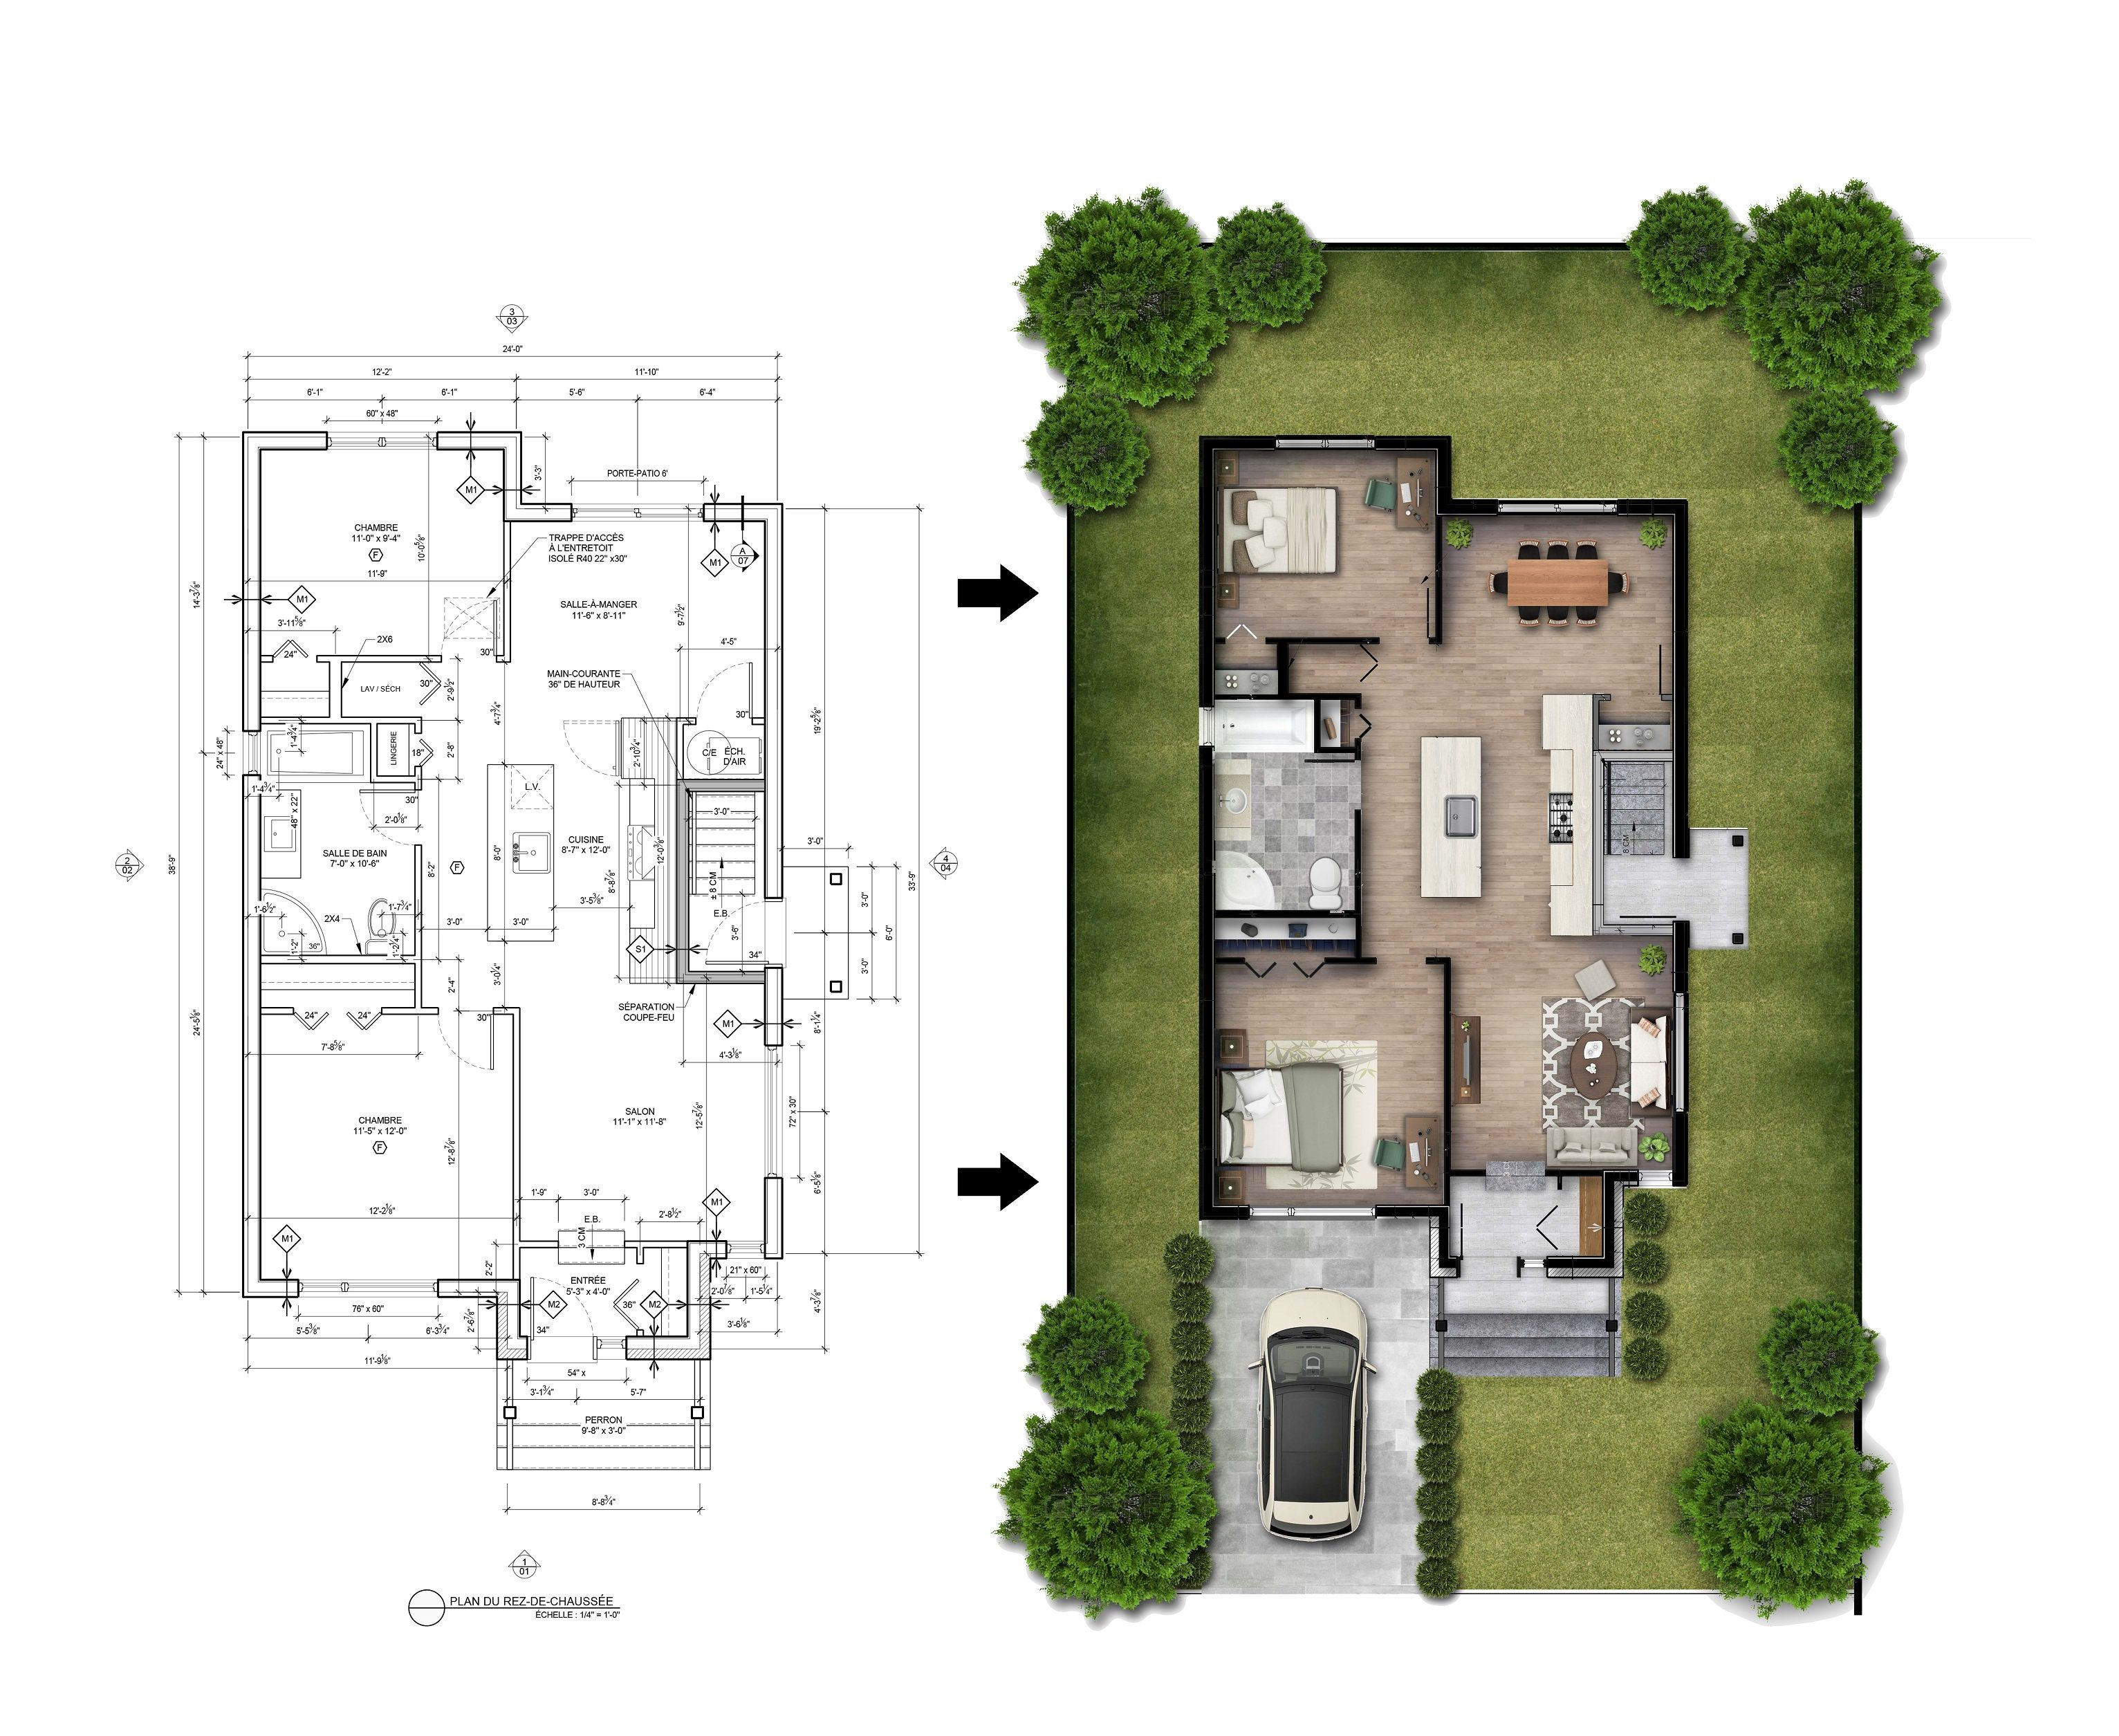 Em Designs I Will Render Your Floor Plans In Photoshop For 20 On Fiverr Com Photoshop Rendering Interior Design Renderings Architecture Site Plan